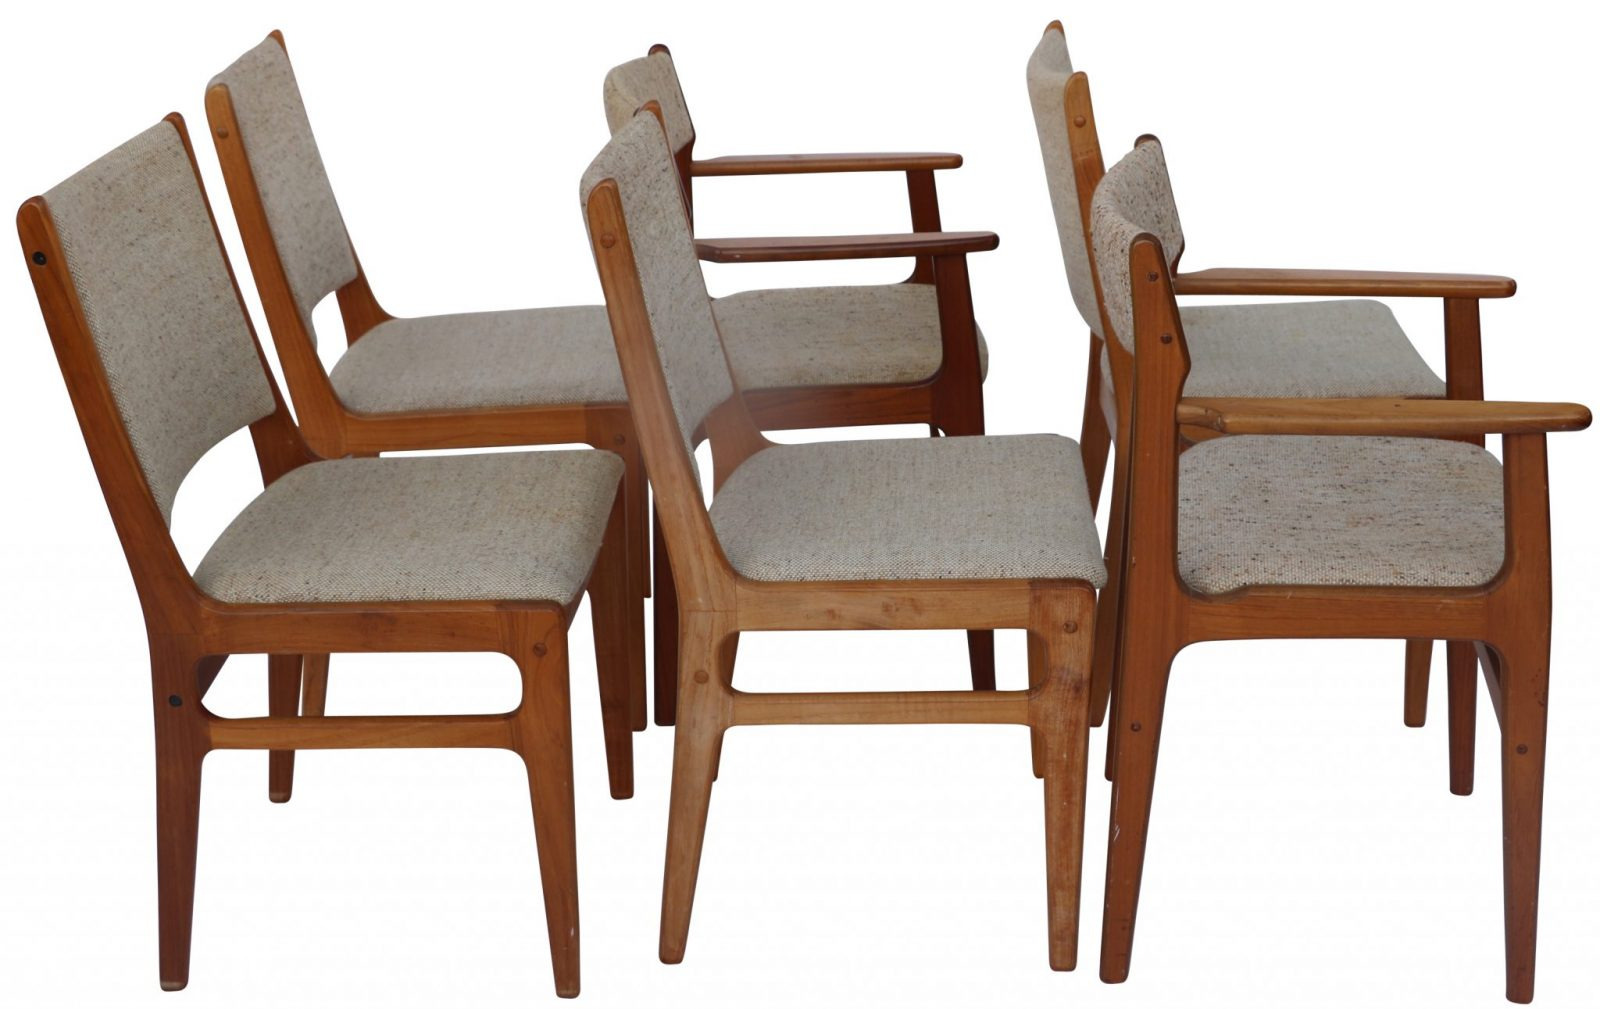 Elegant Set Of Six Original Vintage D Scan Teak Dining Chairs